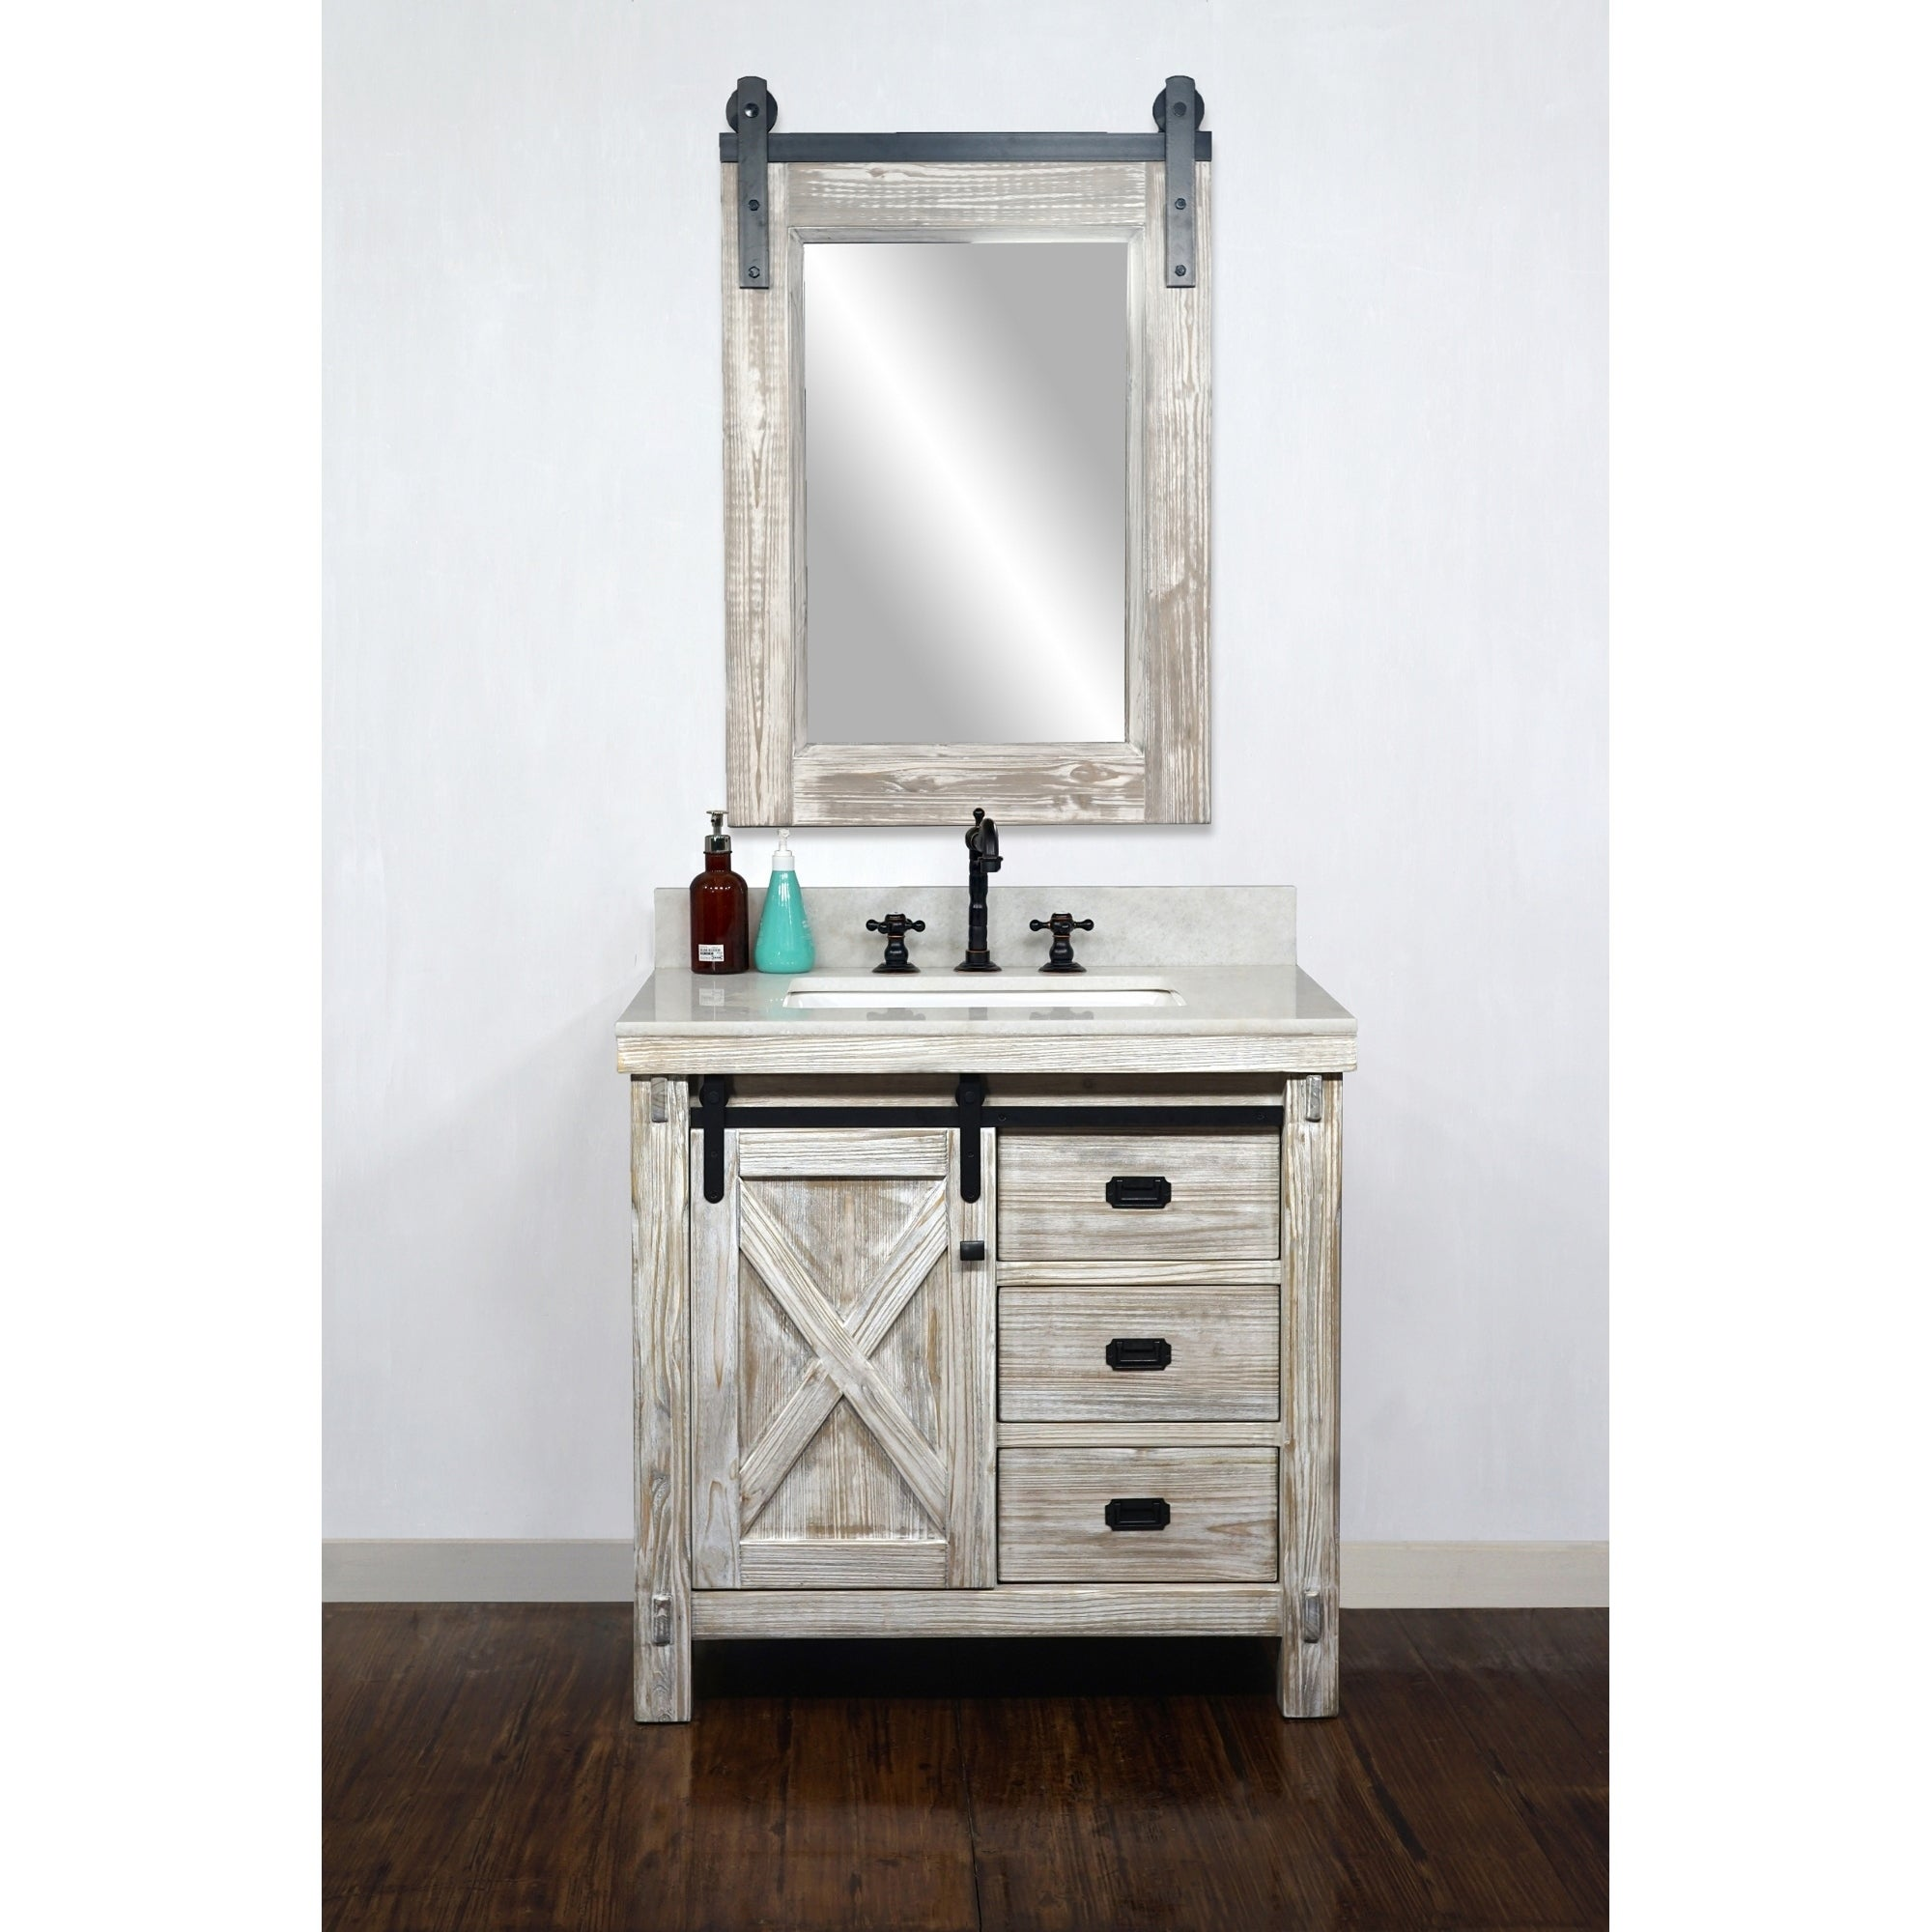 37 Rustic Solid Fir Barn Door Style Single Sink White Wash Finish Vanity With Marble Or Granite Top No Faucet Overstock 29882552